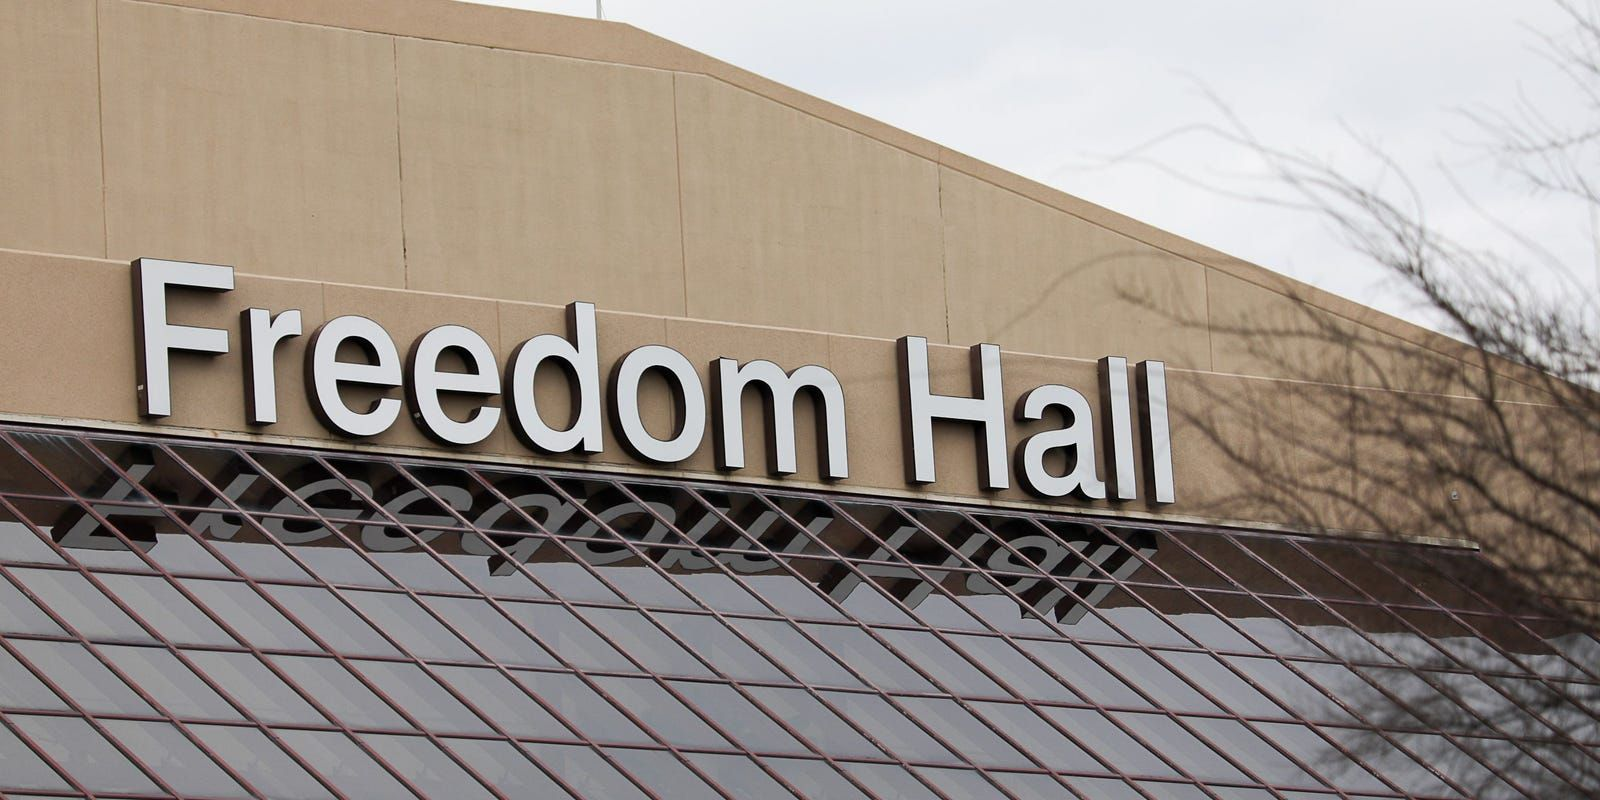 Louisville xtreme arena football coming back to freedom